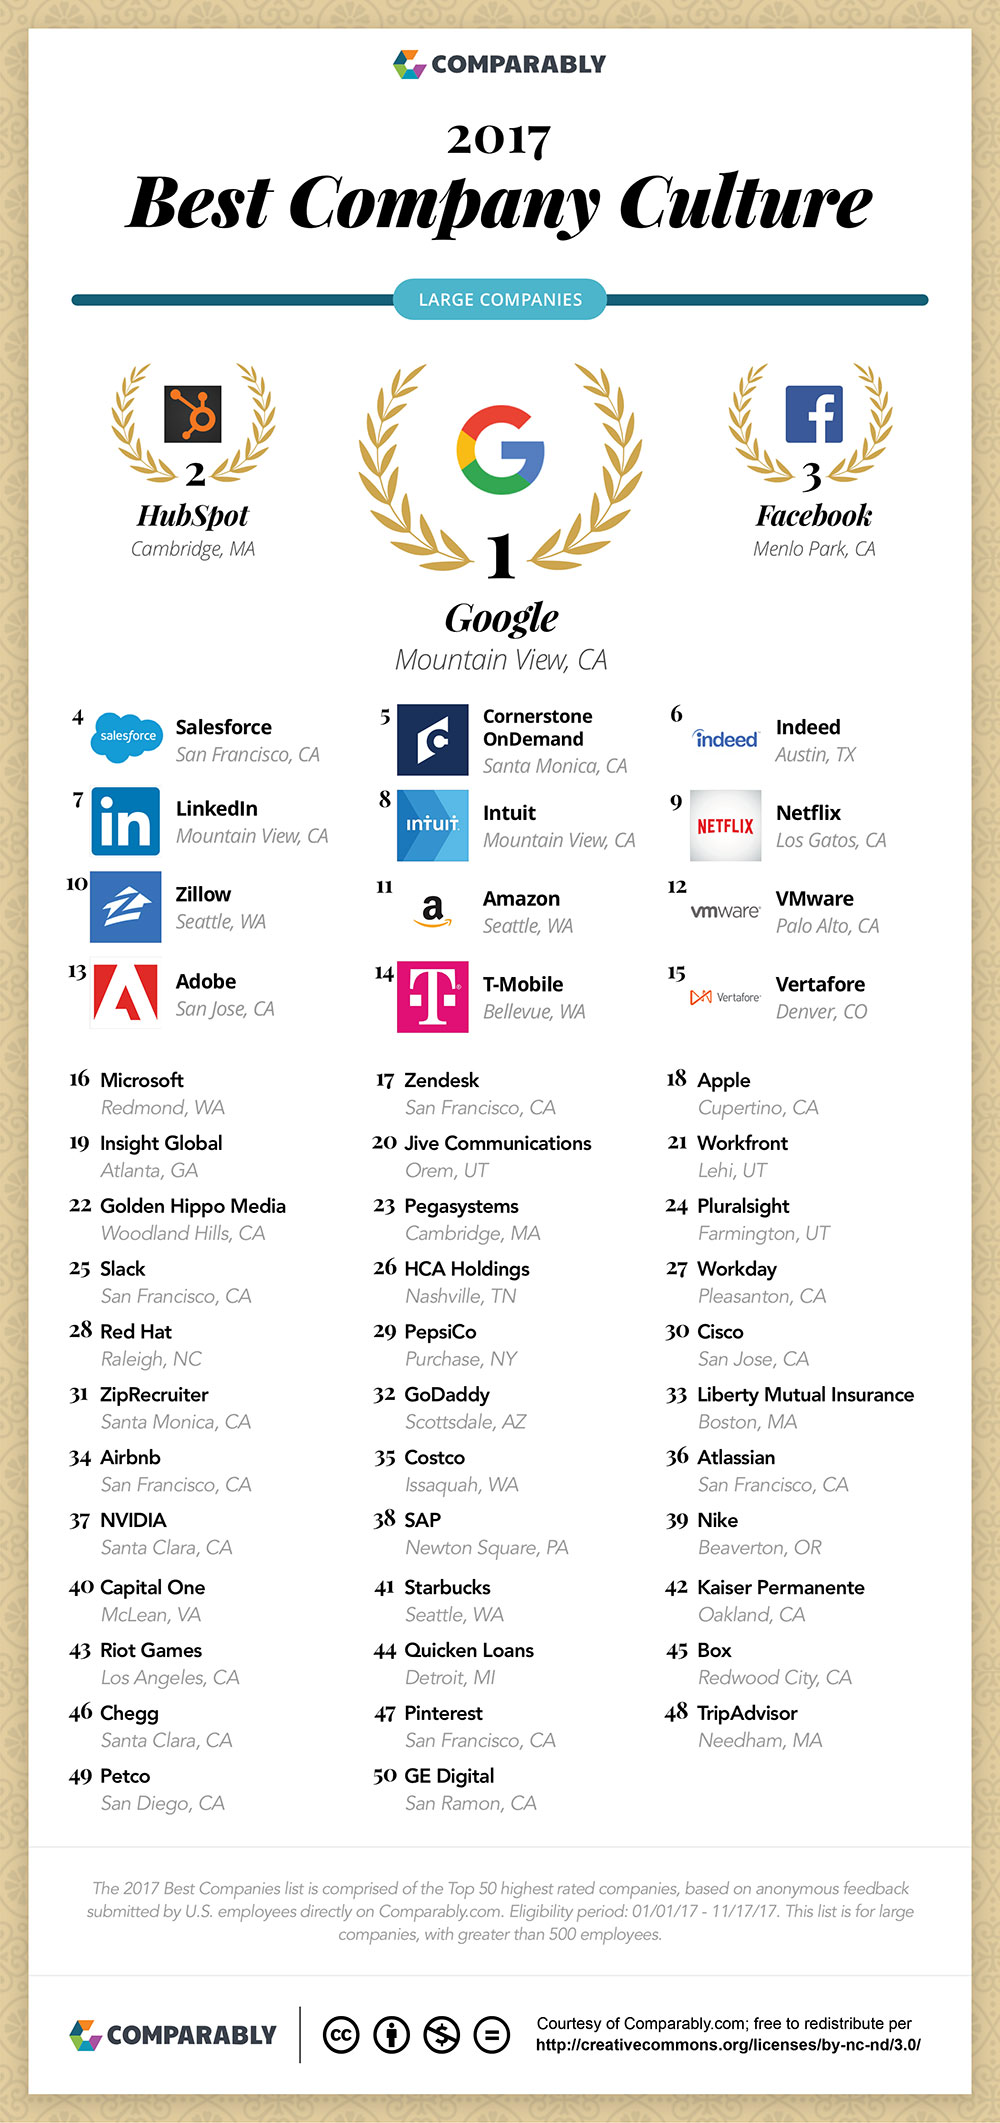 Best Company Culture: Who Made the List in 2017 (Large Companies) - Infographic